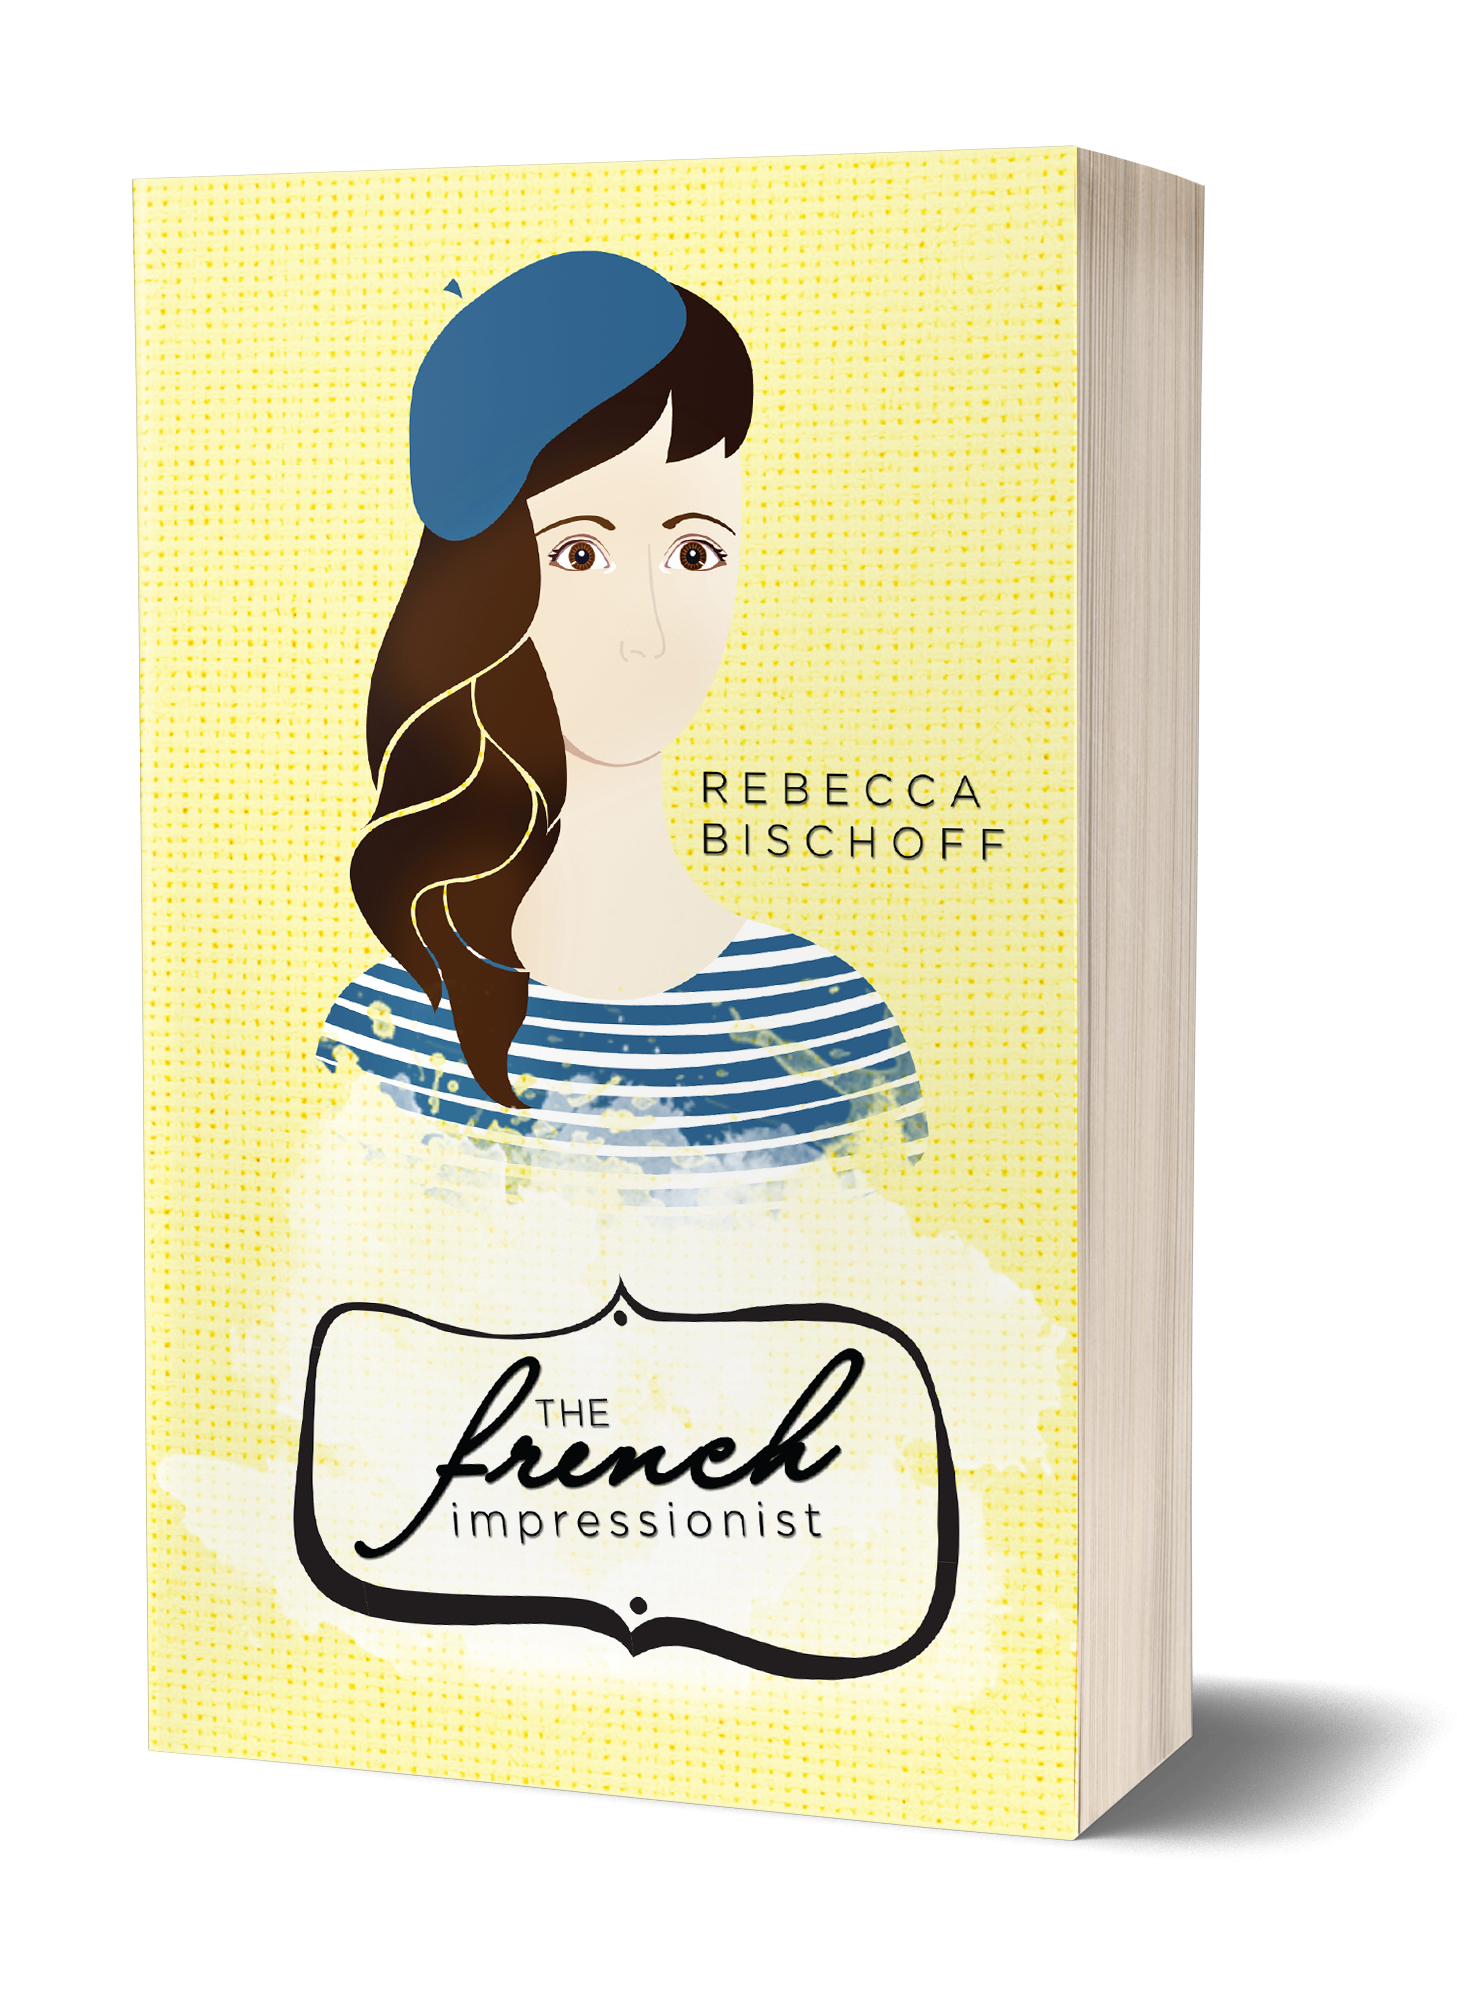 The French Impressionist book cover, yellow background, drawing of a girl with no mouth, in a blue beret and blue striped shirt